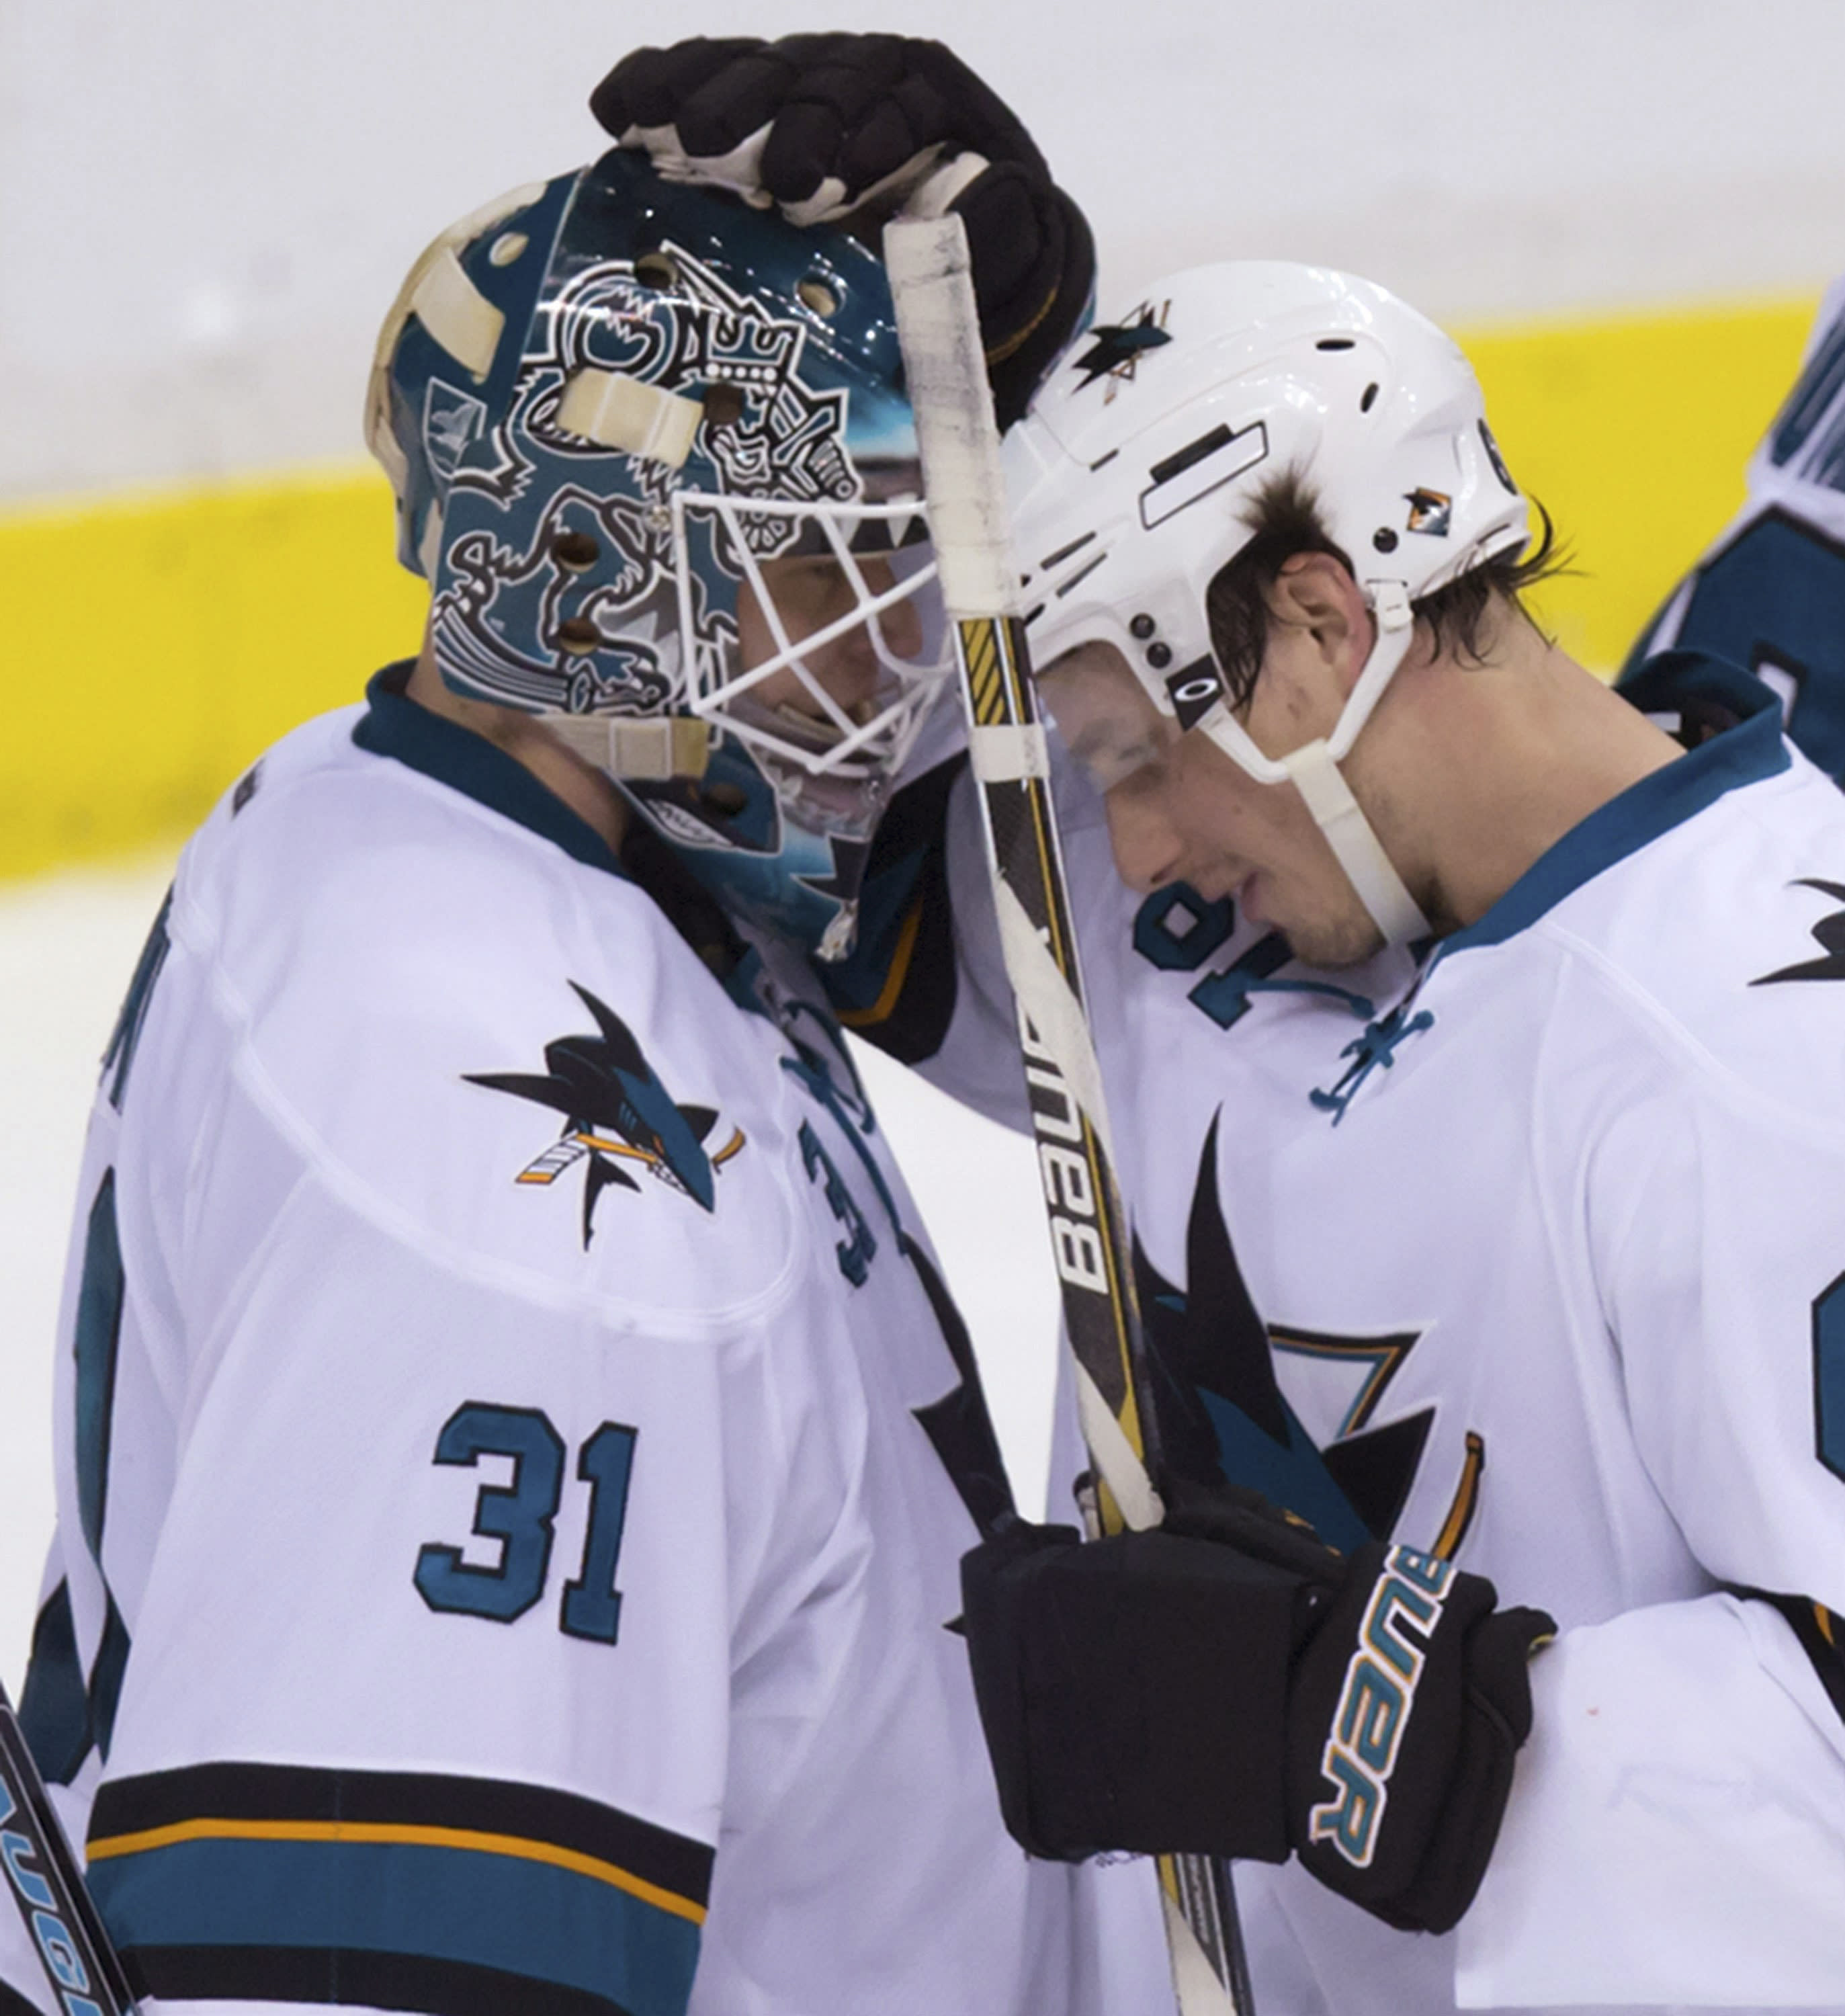 Nieto has 2 goals and assist as Sharks beat Canucks 6-2